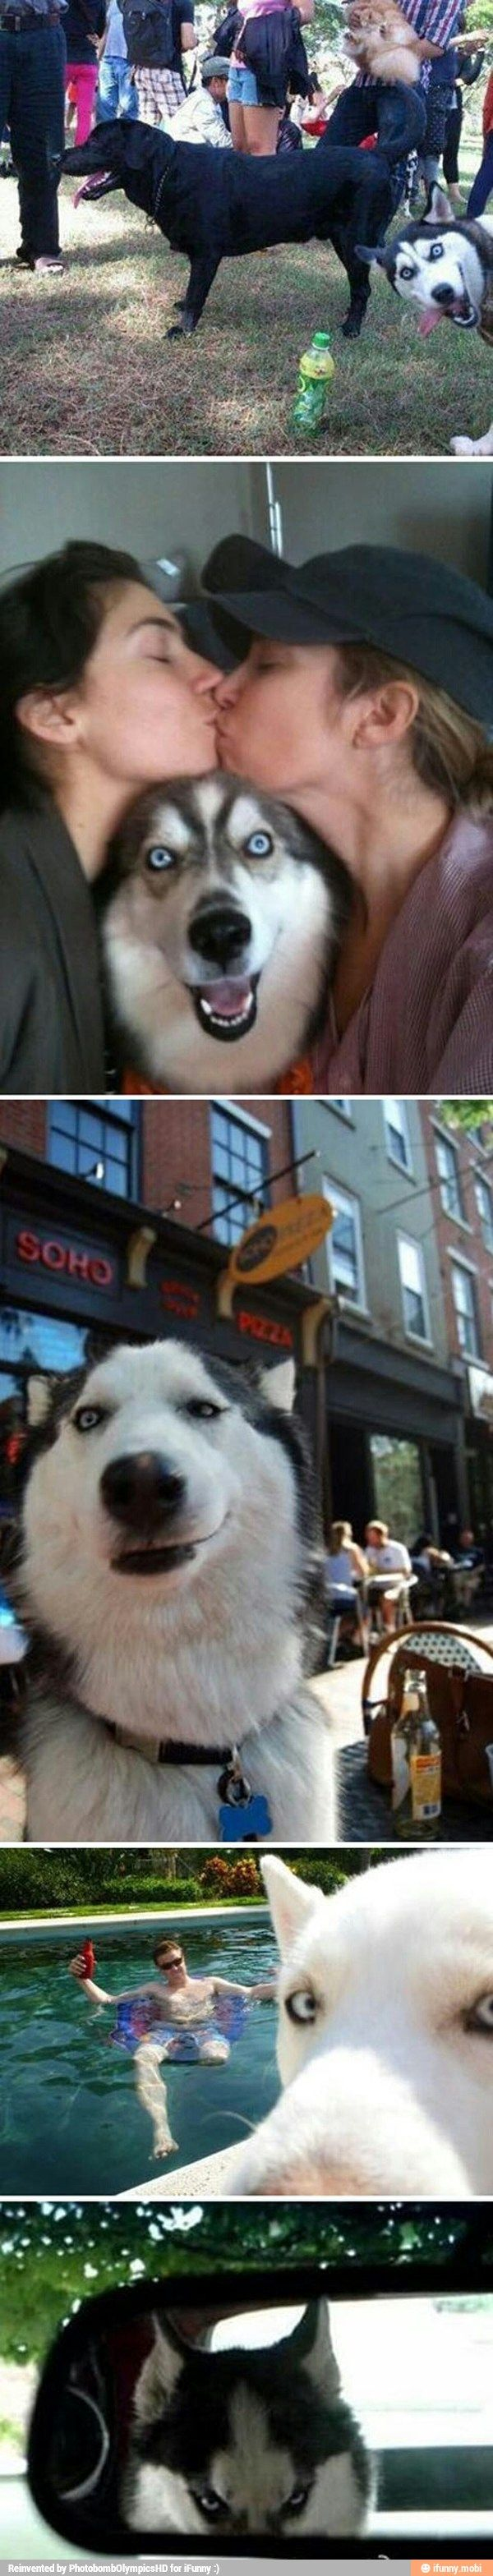 Man's best friend...and photobomber :)